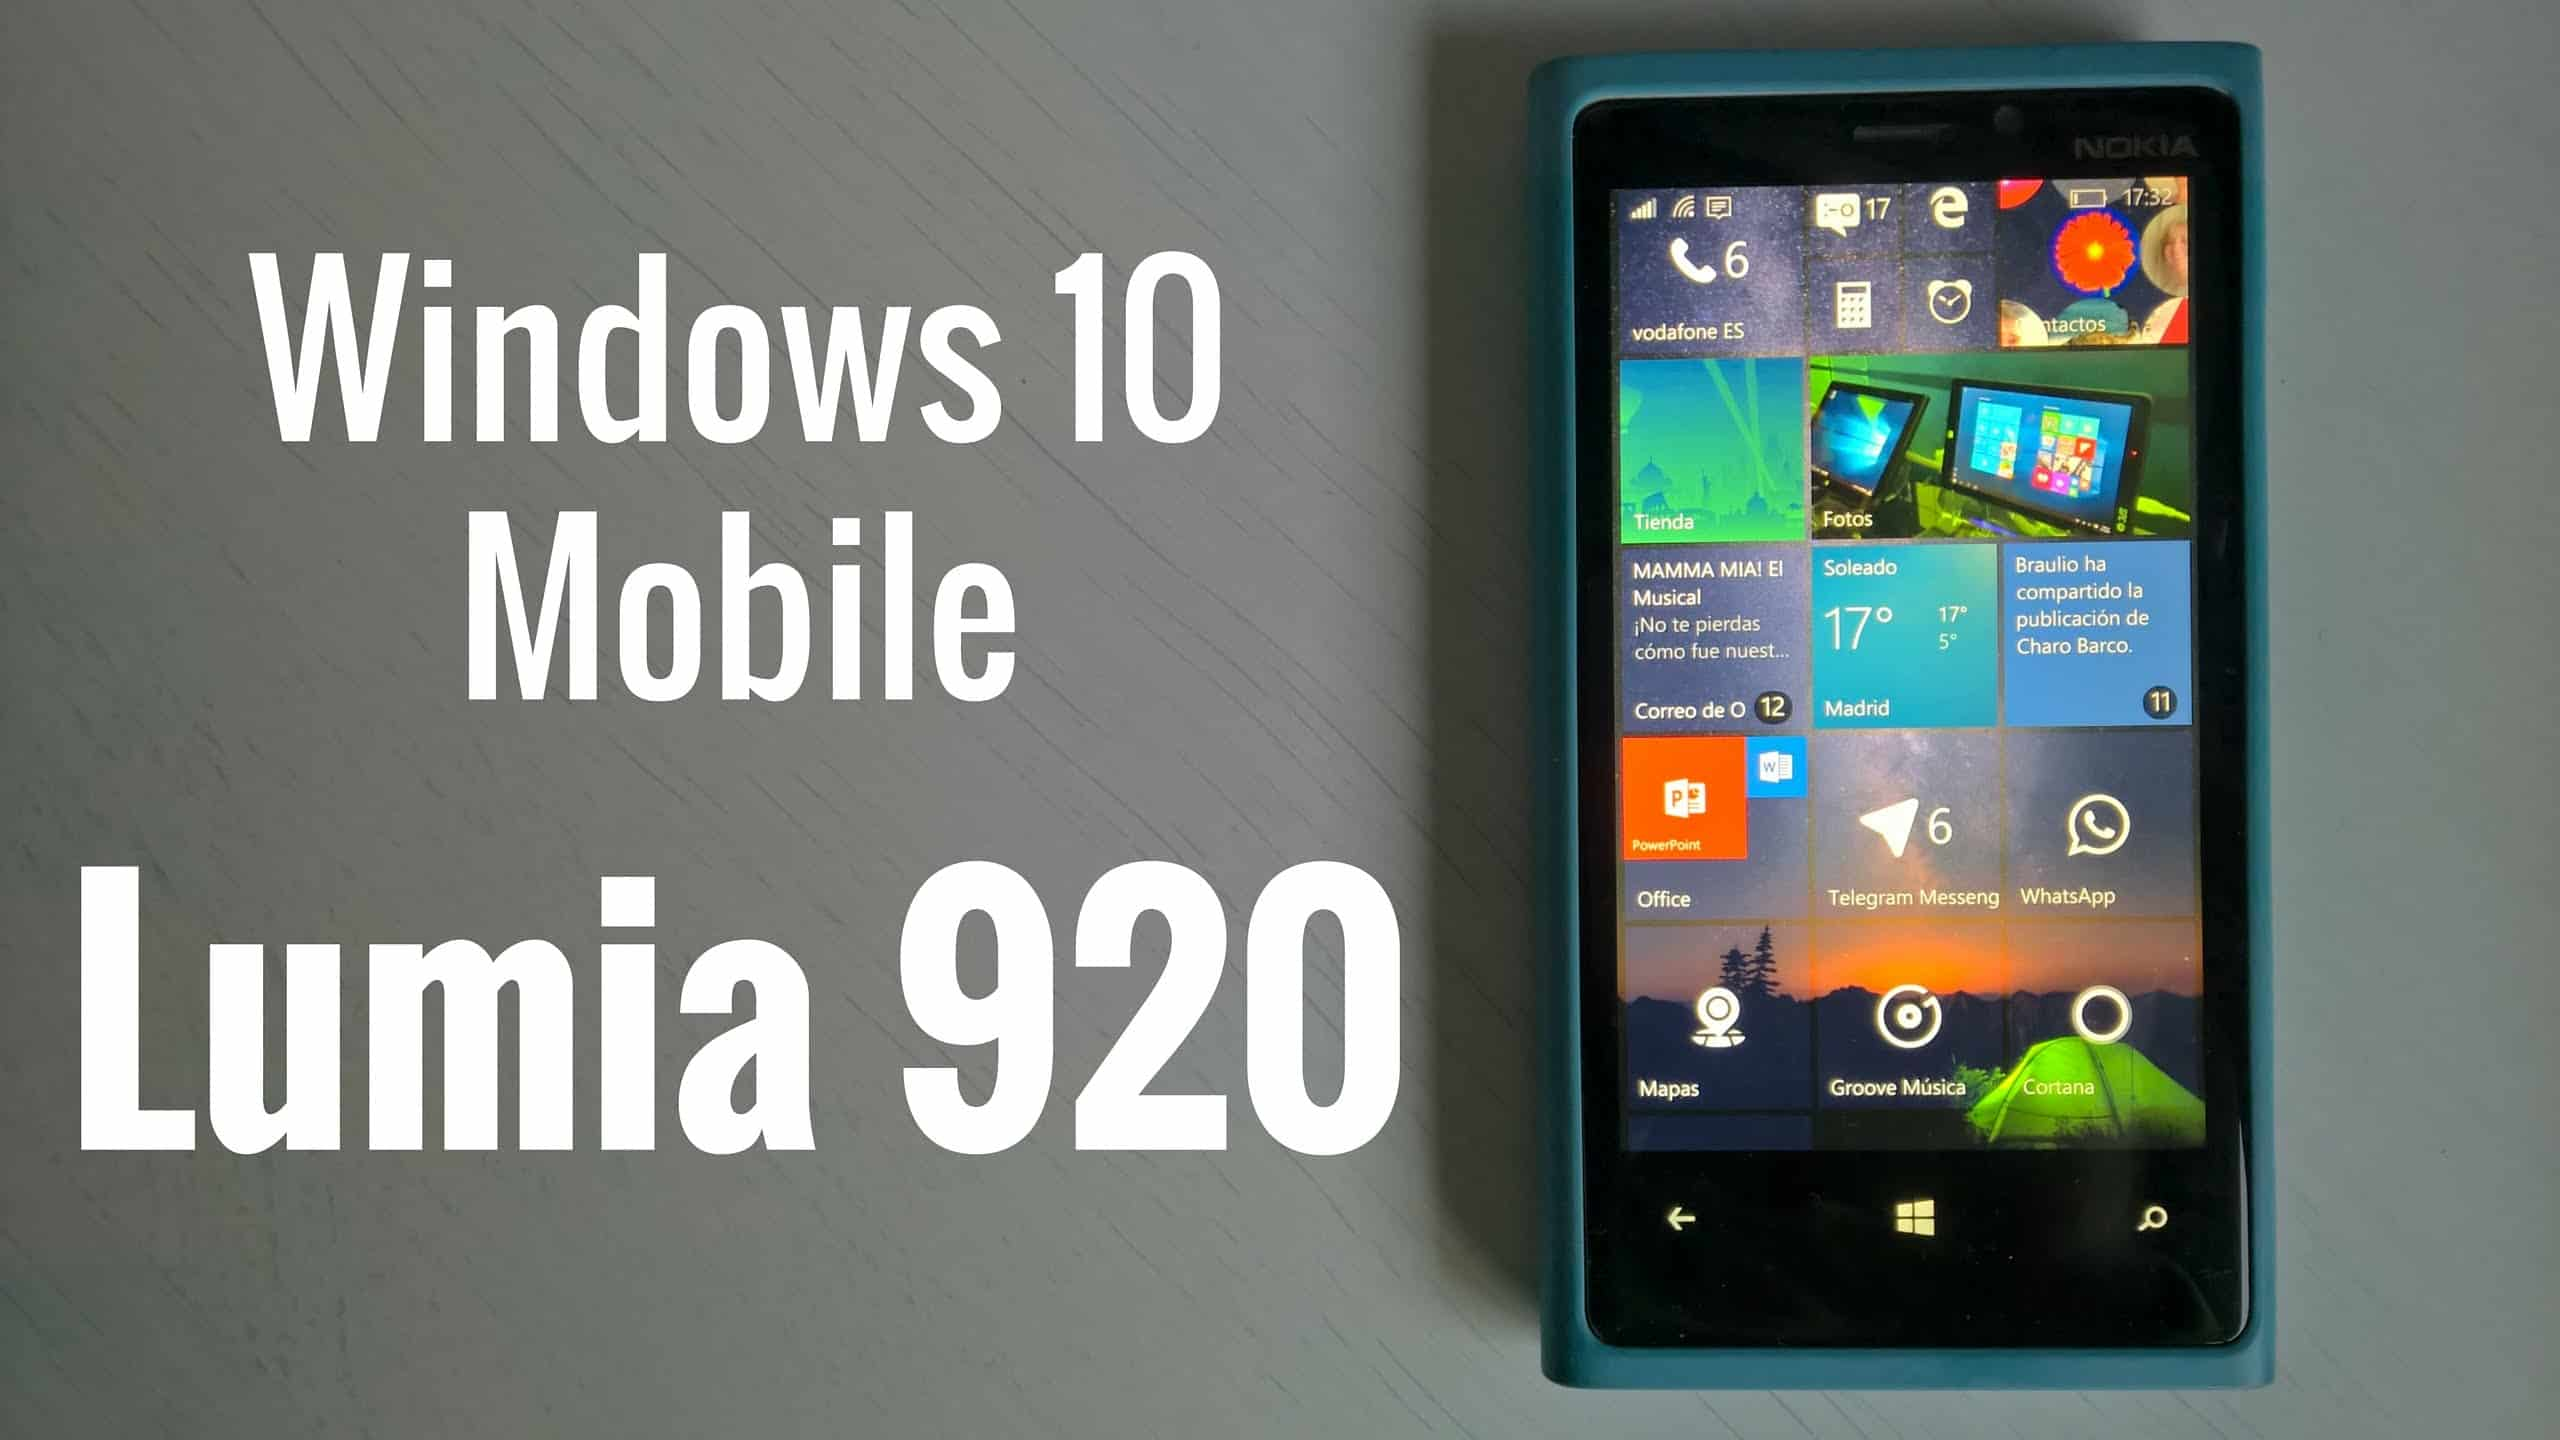 How to Get Life in a frozen Nokia Lumia 920